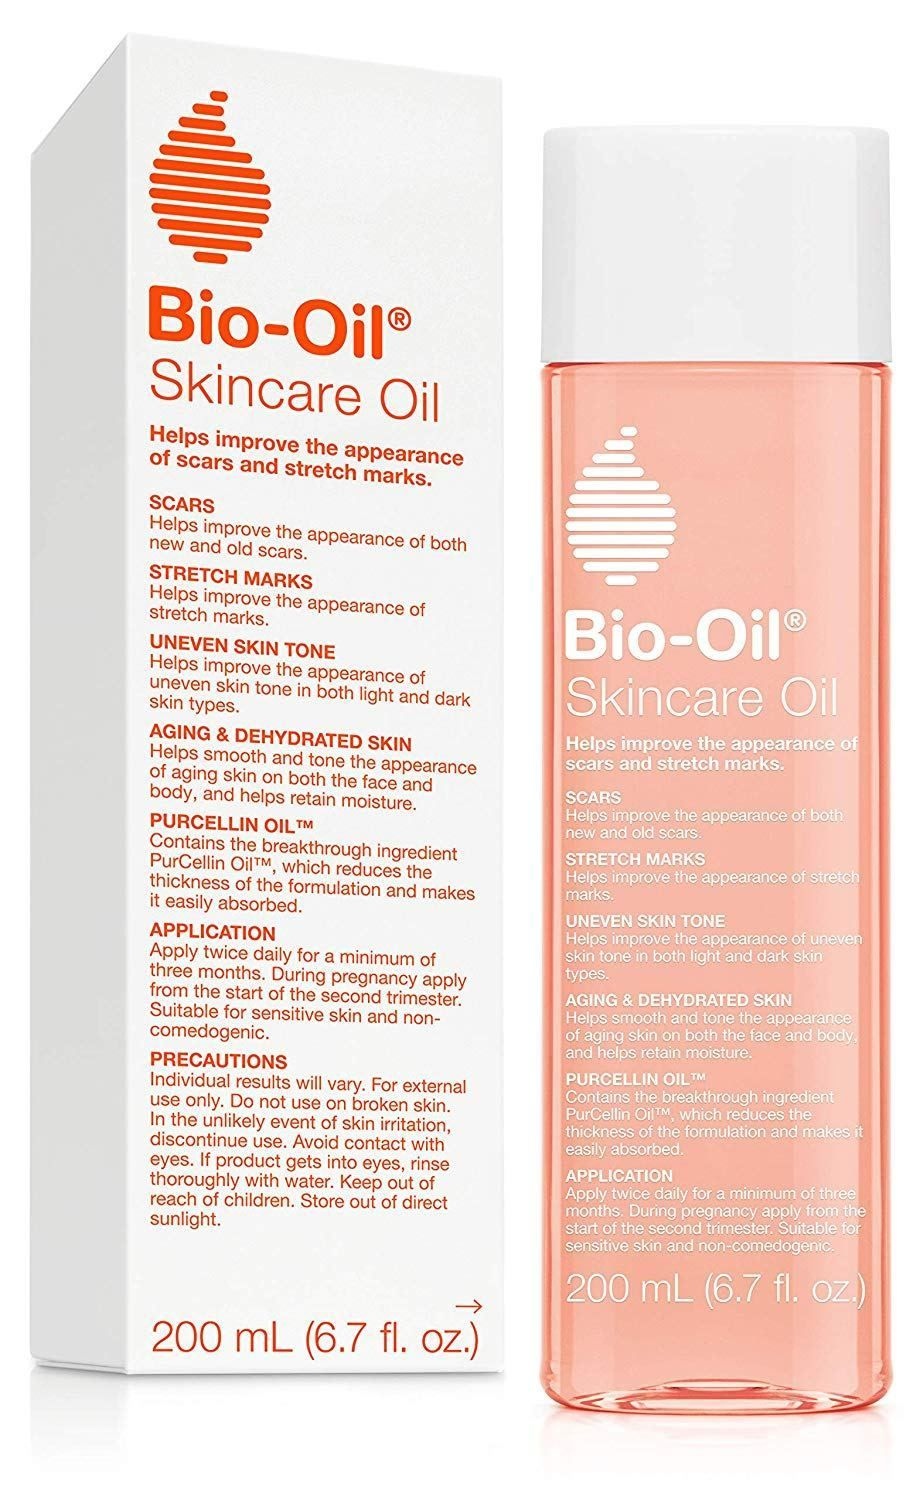 Stretch Mark Removal With Images Oil Skin Care Bio Oil 200ml